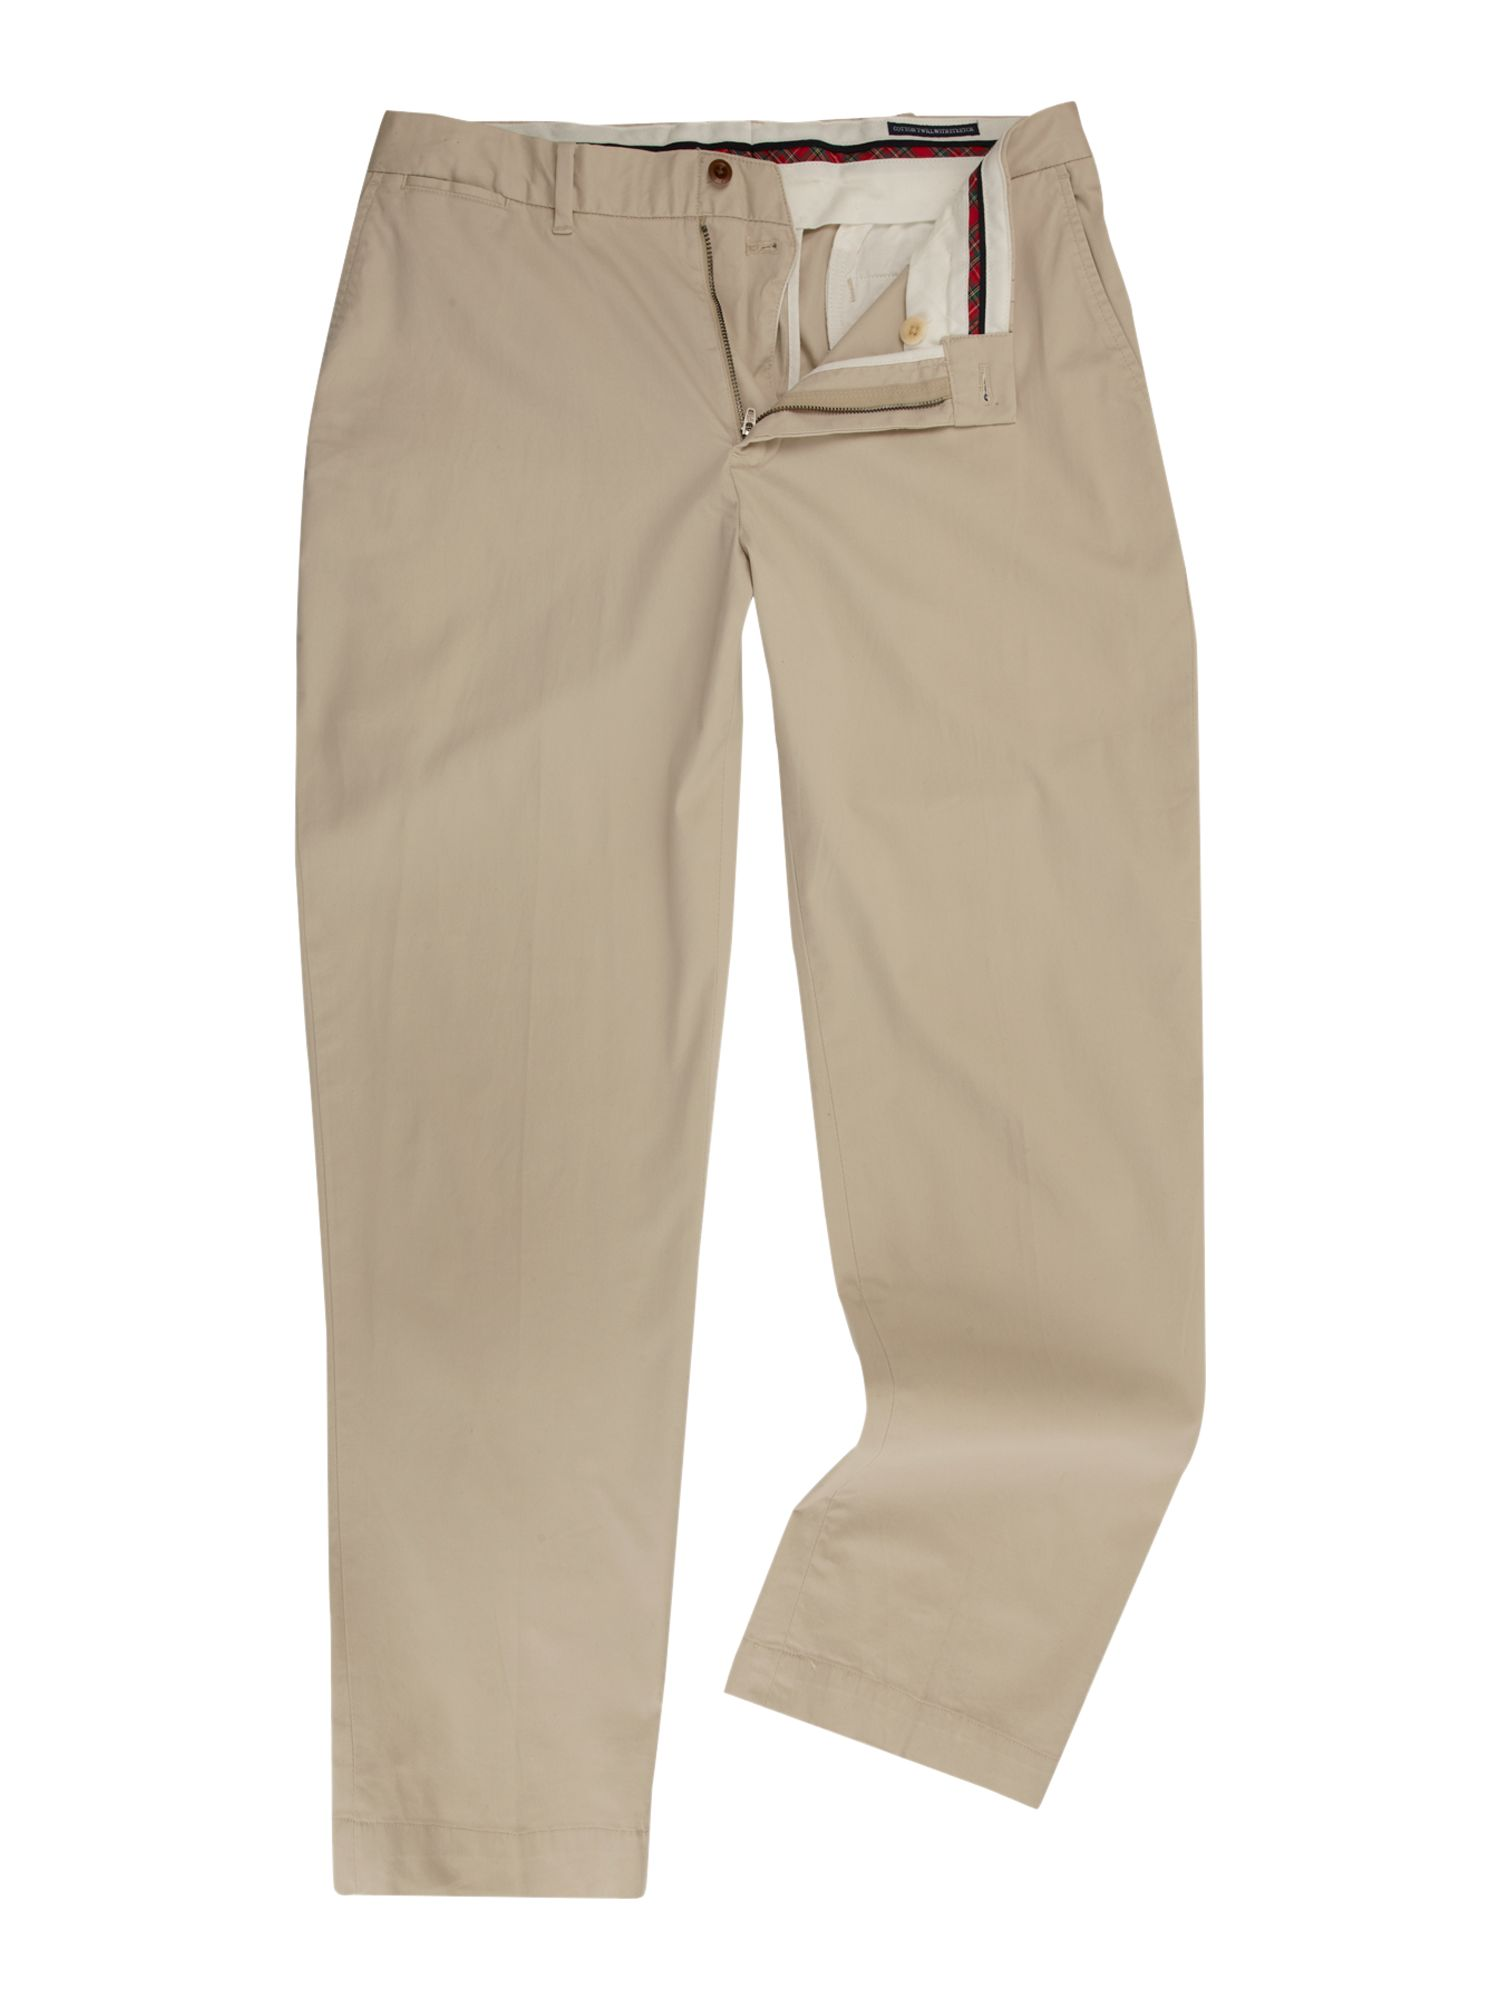 Barrow fit chino trousers